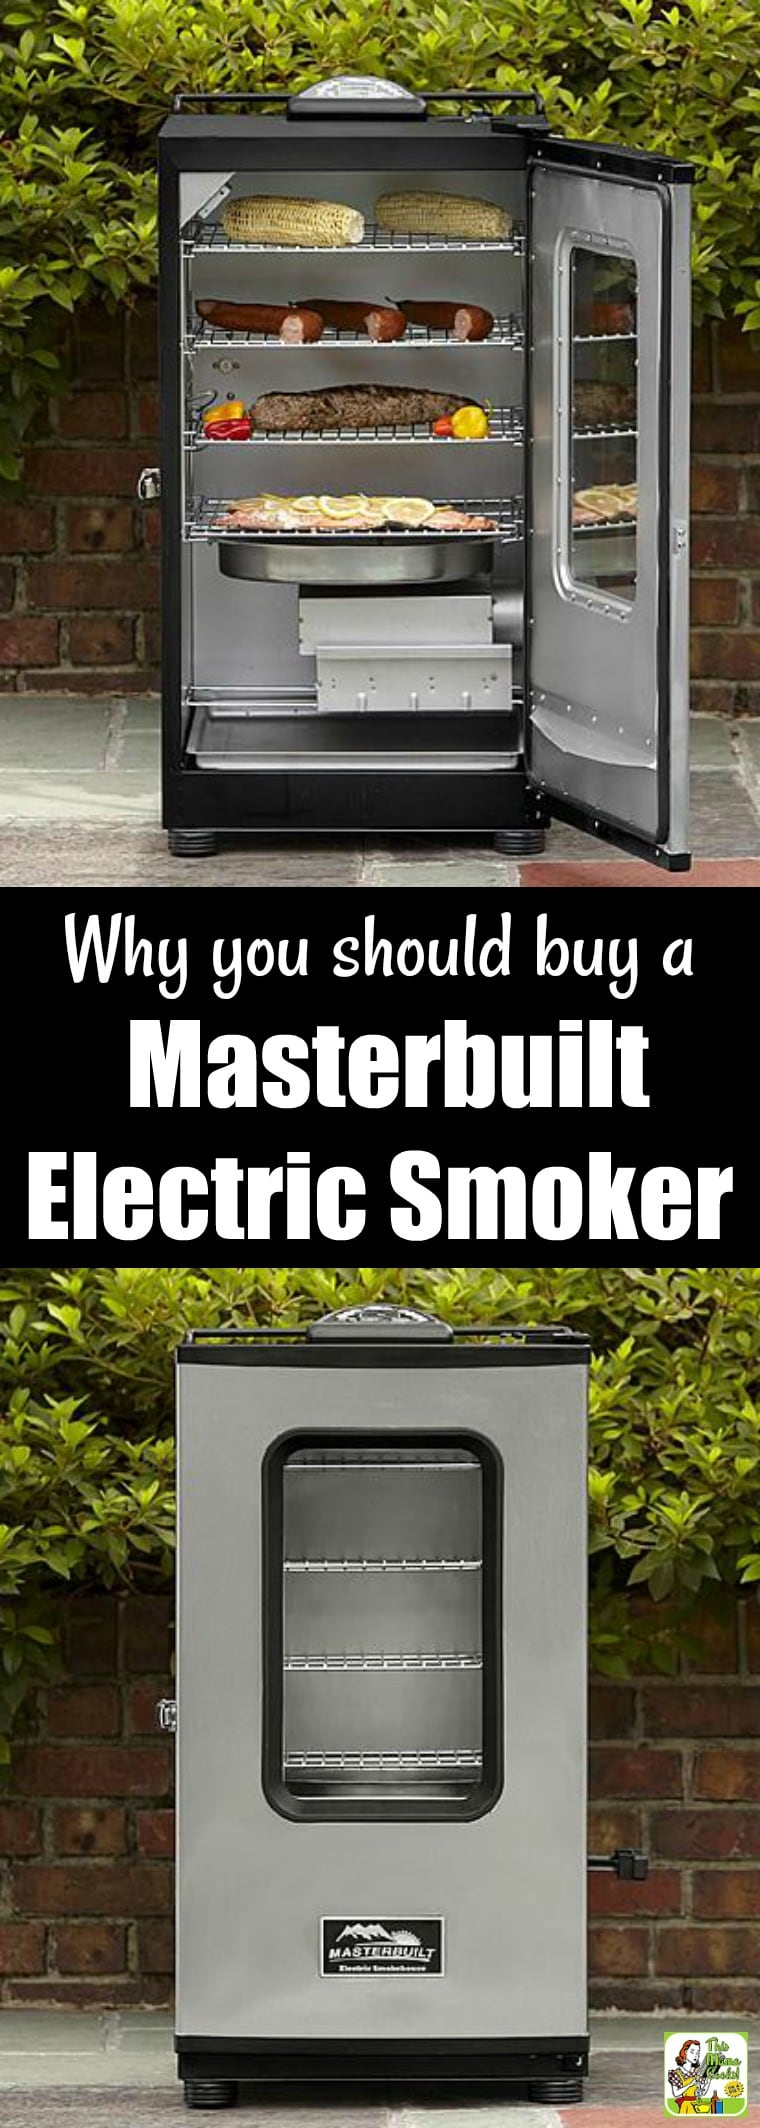 Why you should buy a Masterbuilt Electric Smoker